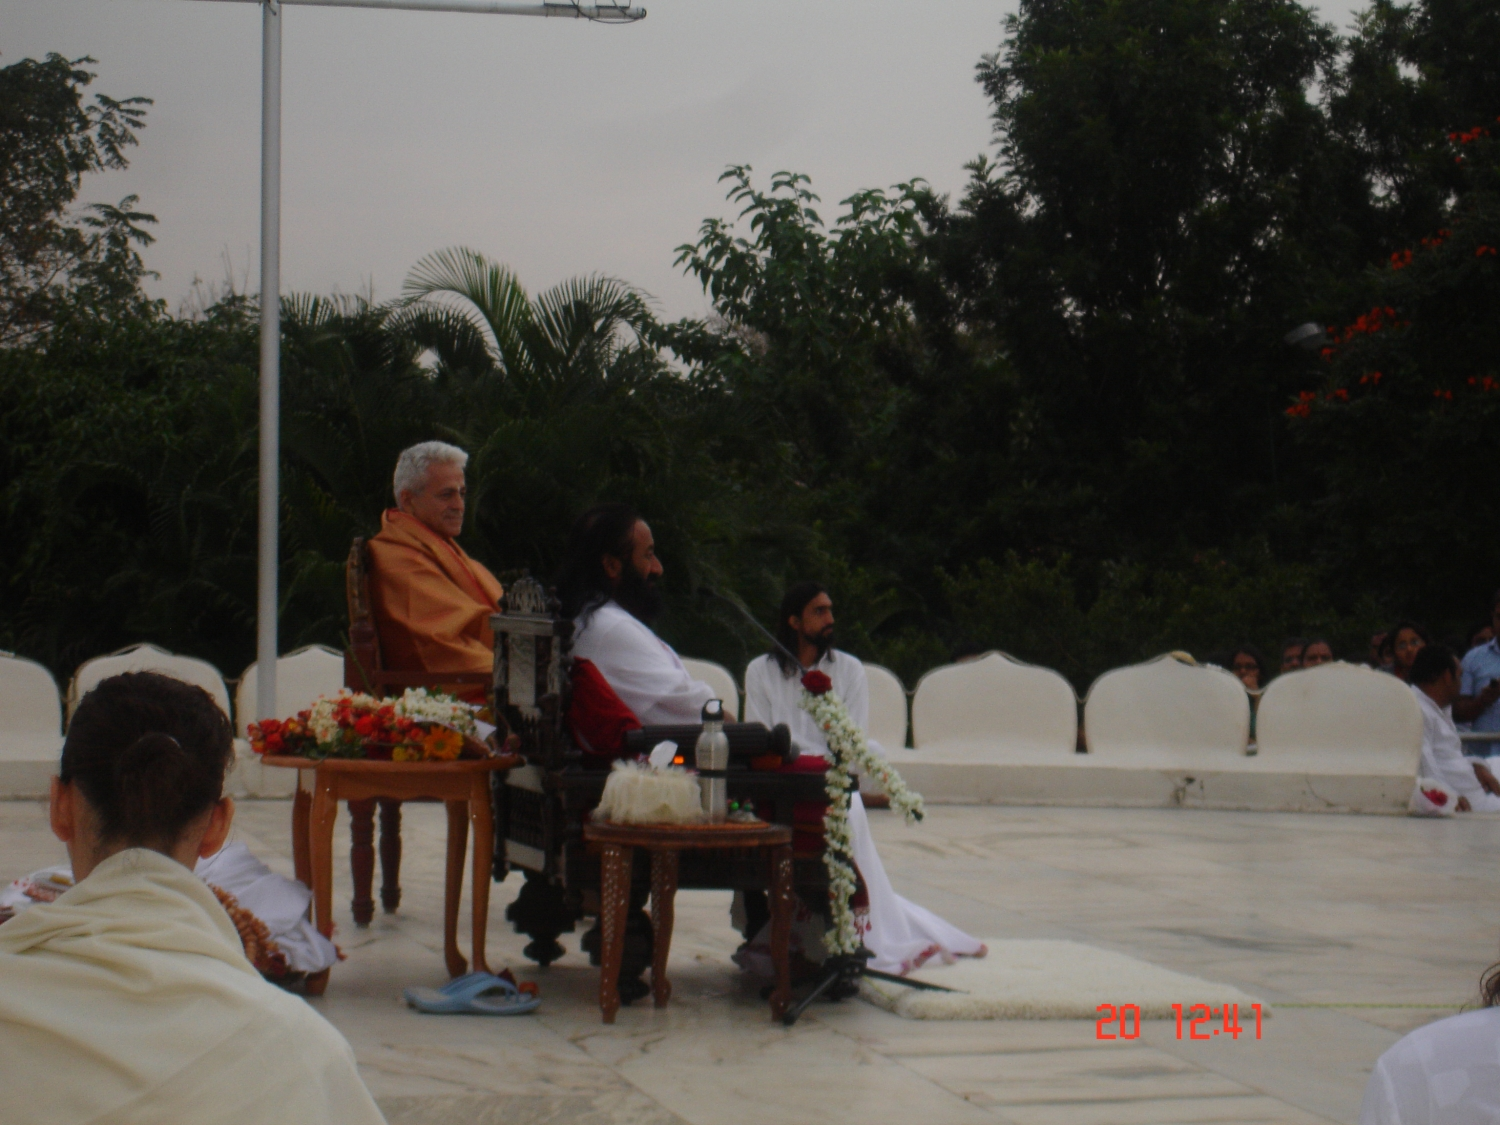 Meeting of H.H. Jagat Guru Amrta Súryánanda Mahá Rája with Shrí Shrí Ravi Shankar - Headquarters of the Art of Living Foundation, Bengaluru, India - 2010, January